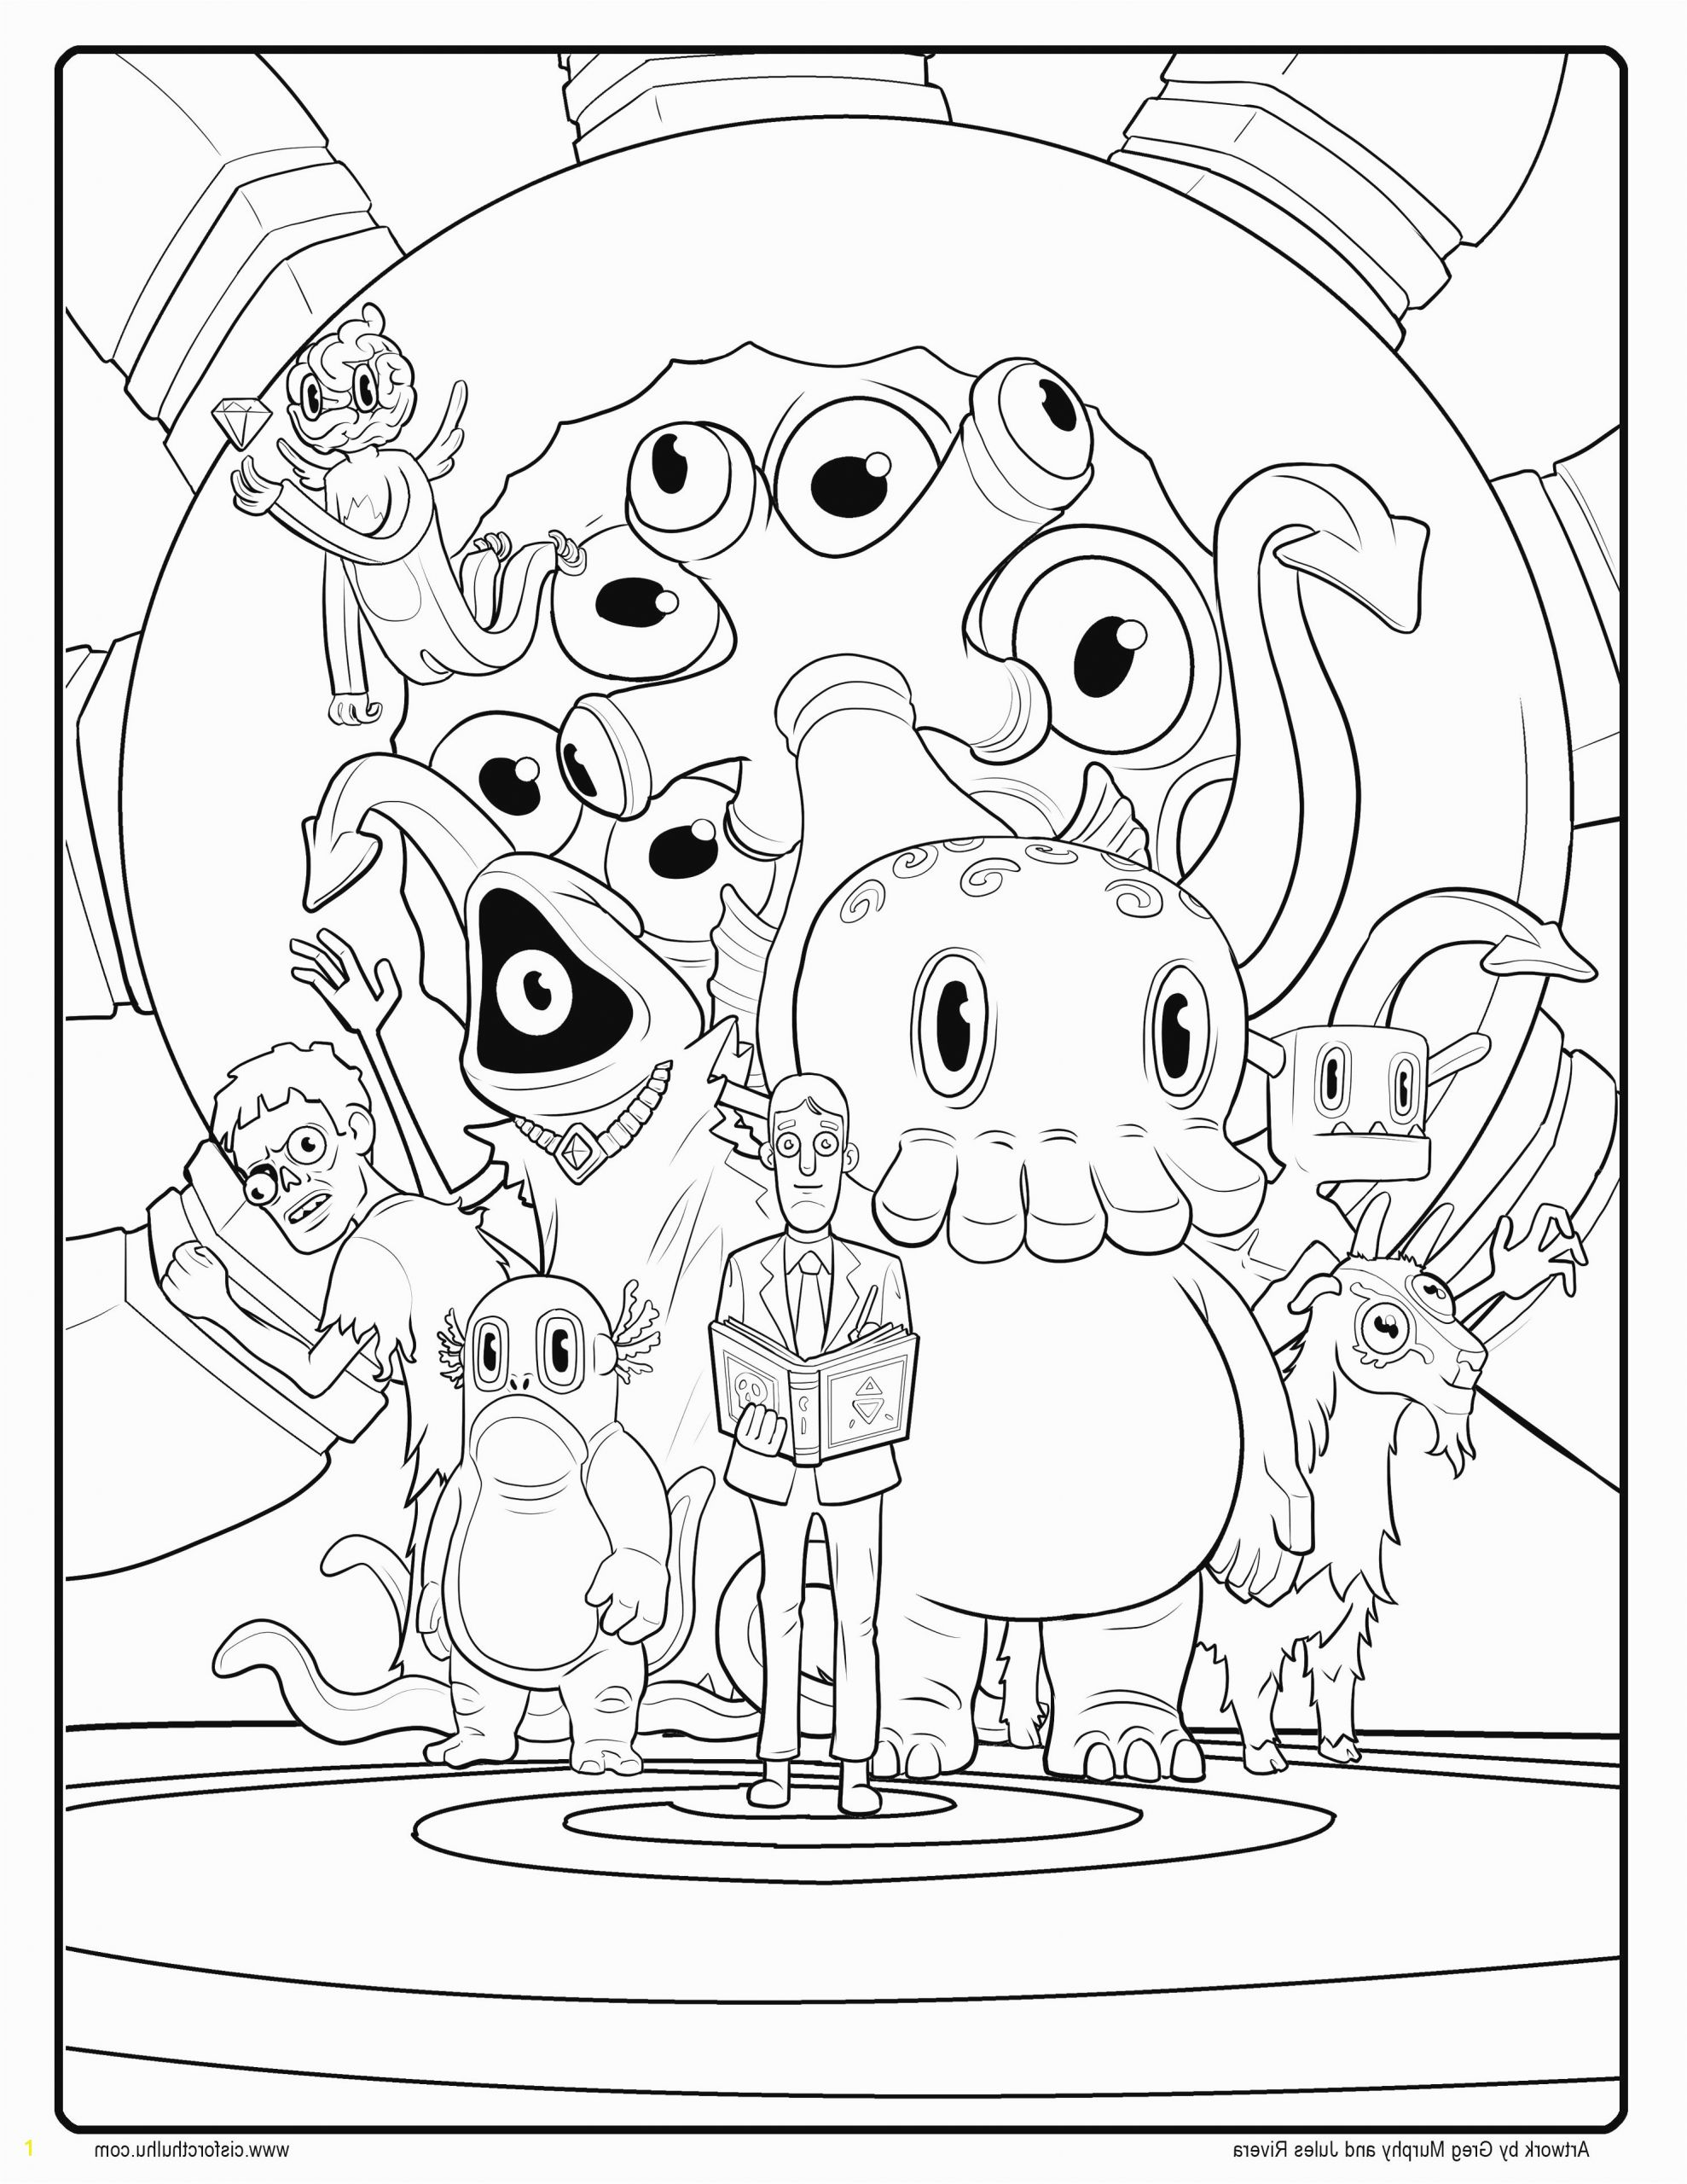 mice coloring page inspirational photos mickey mouse printables coloring pages of mice coloring page